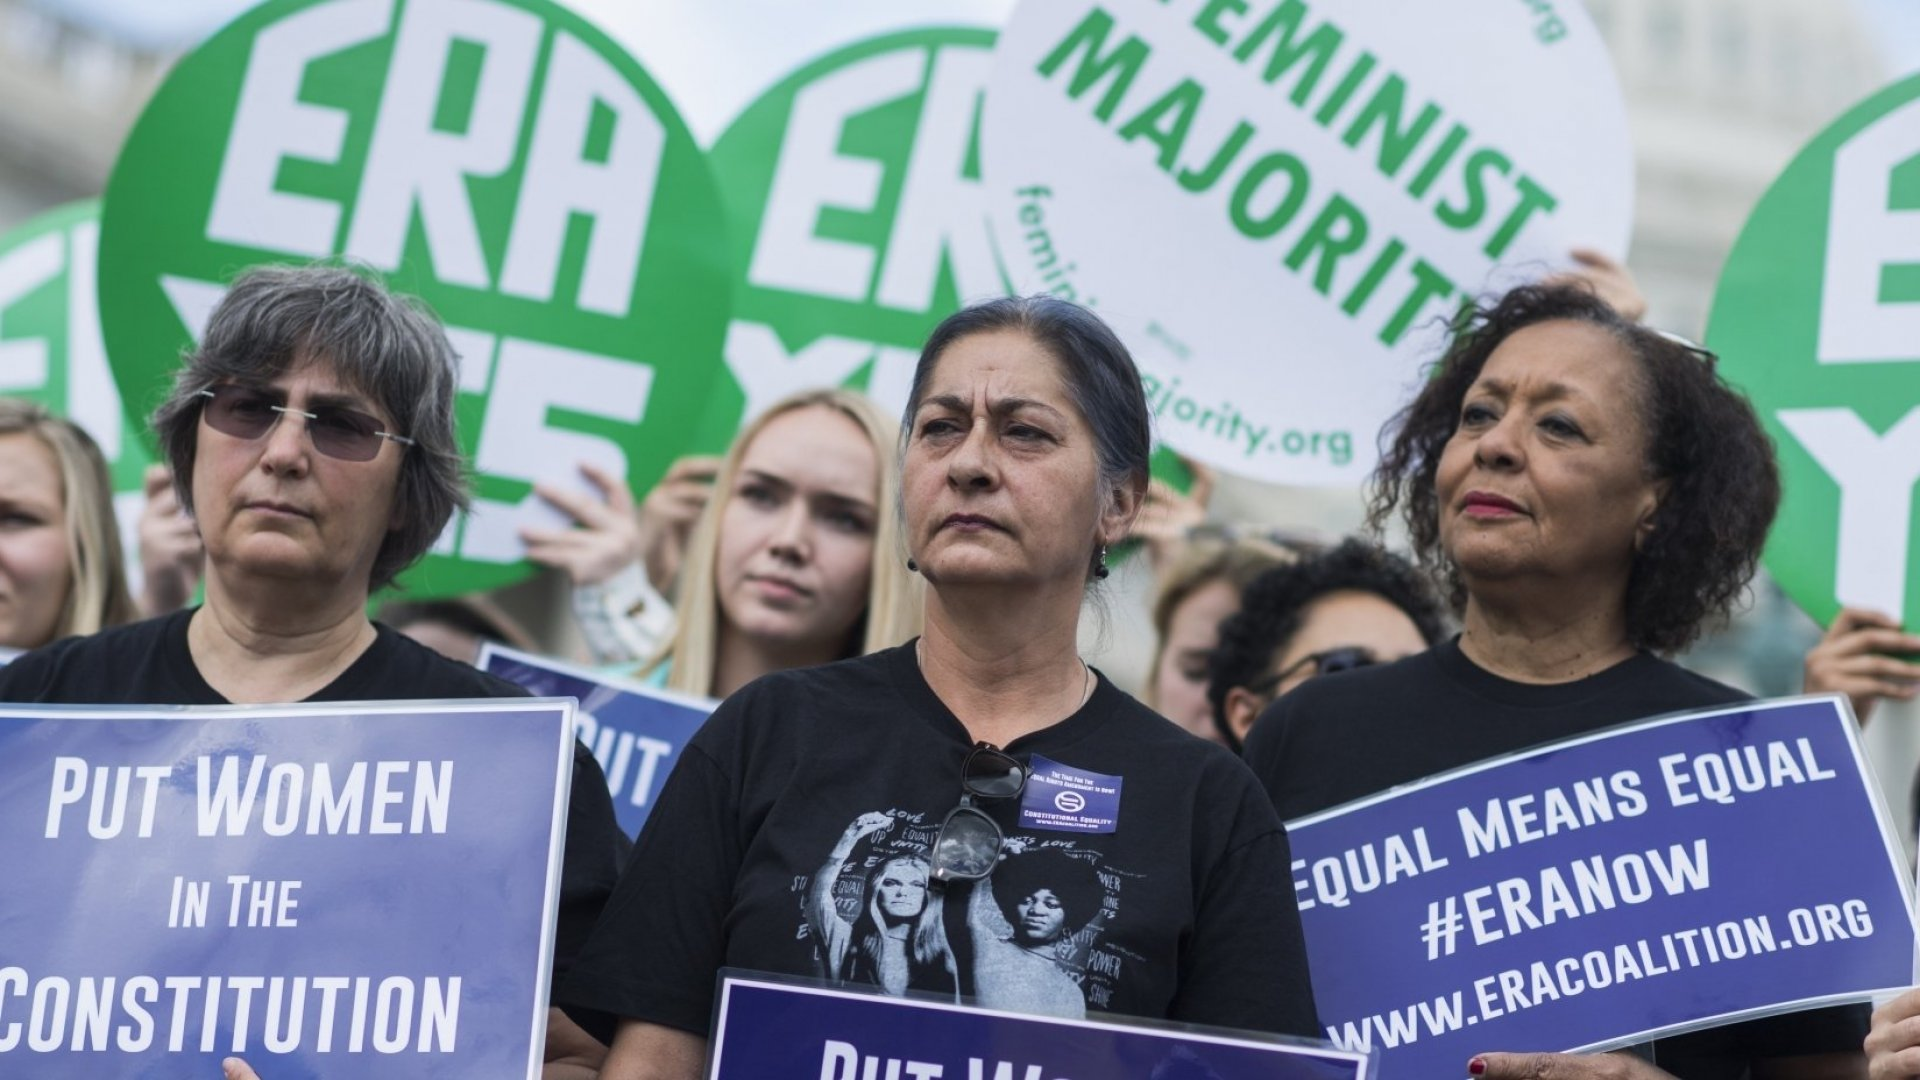 3 in 4 Americans Support the Equal Rights Amendment. That Includes 6 in 10 Republicans